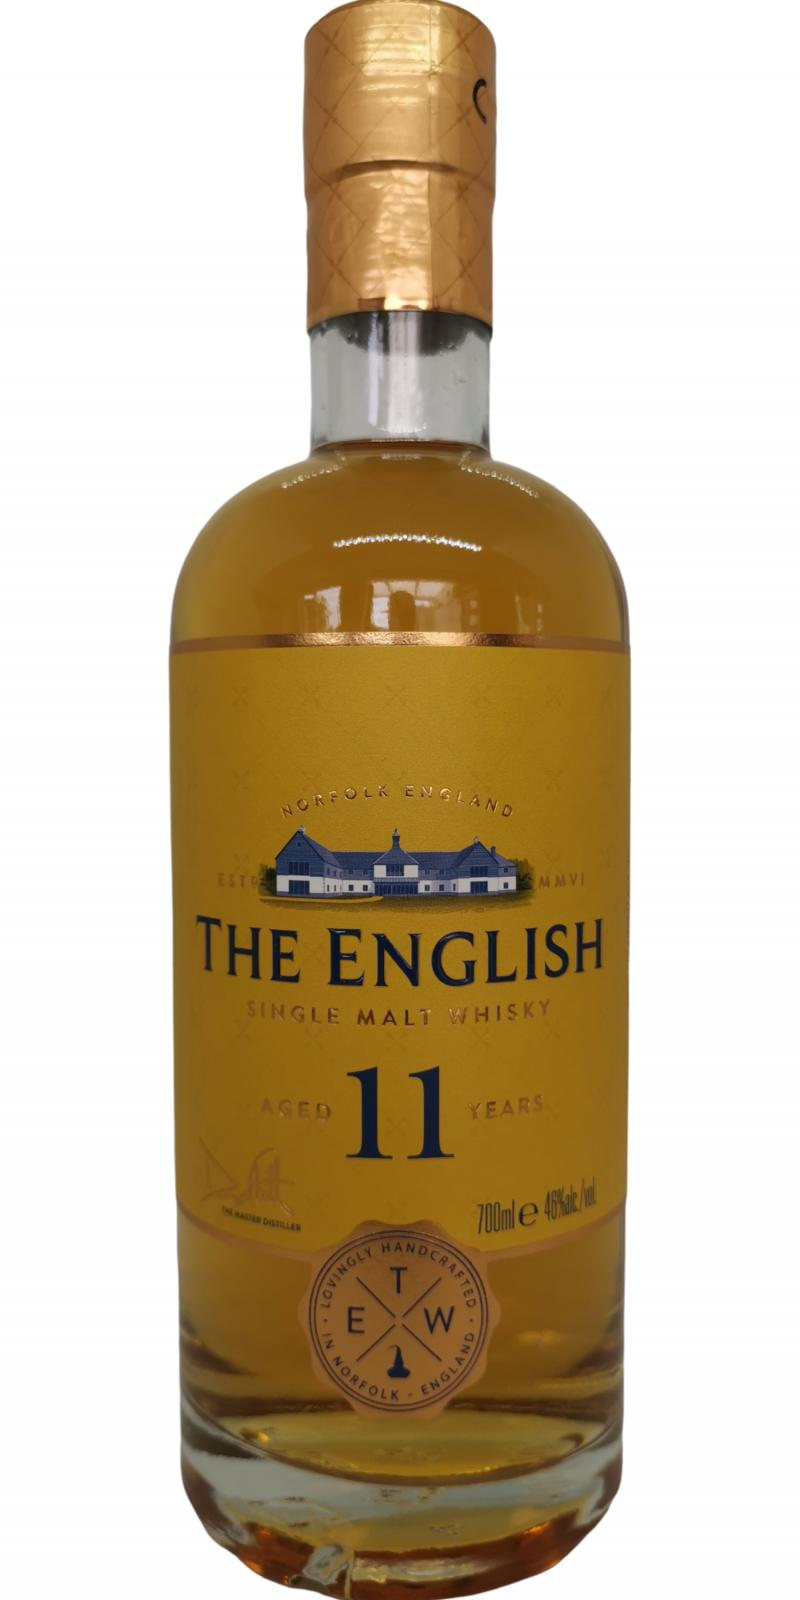 The English Whisky 11-year-old